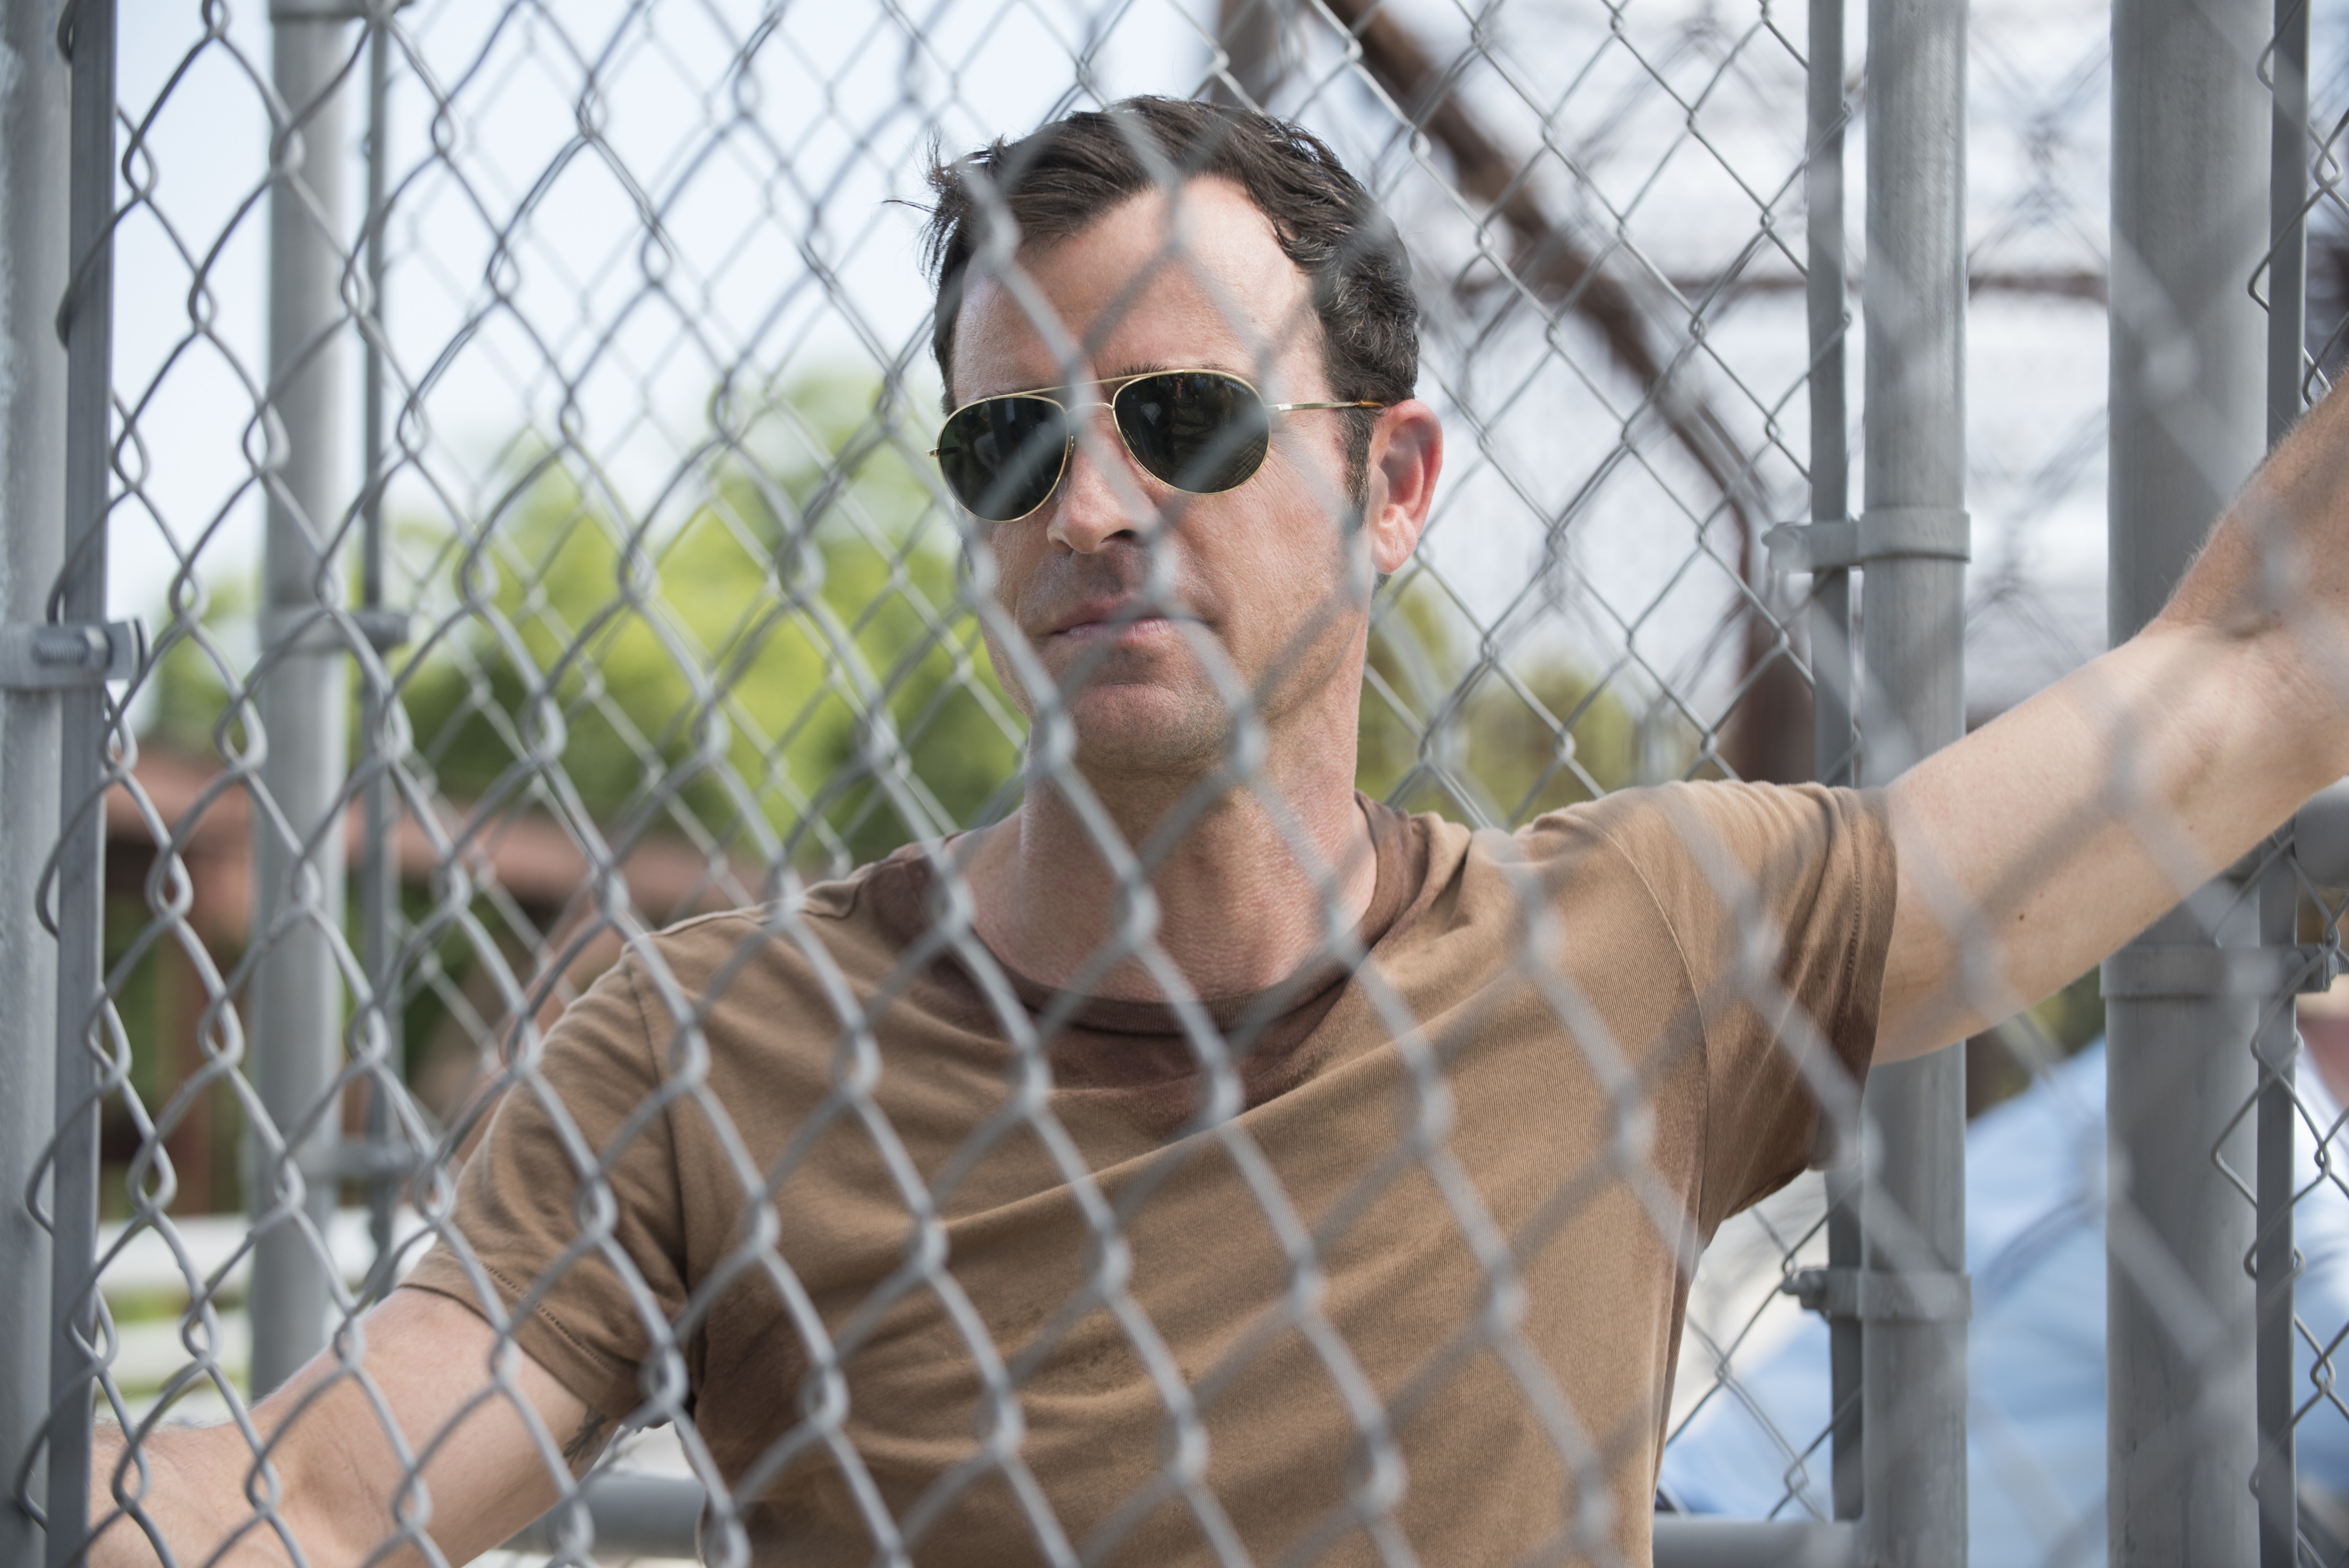 Justin Theroux in season 2 of The Leftovers.